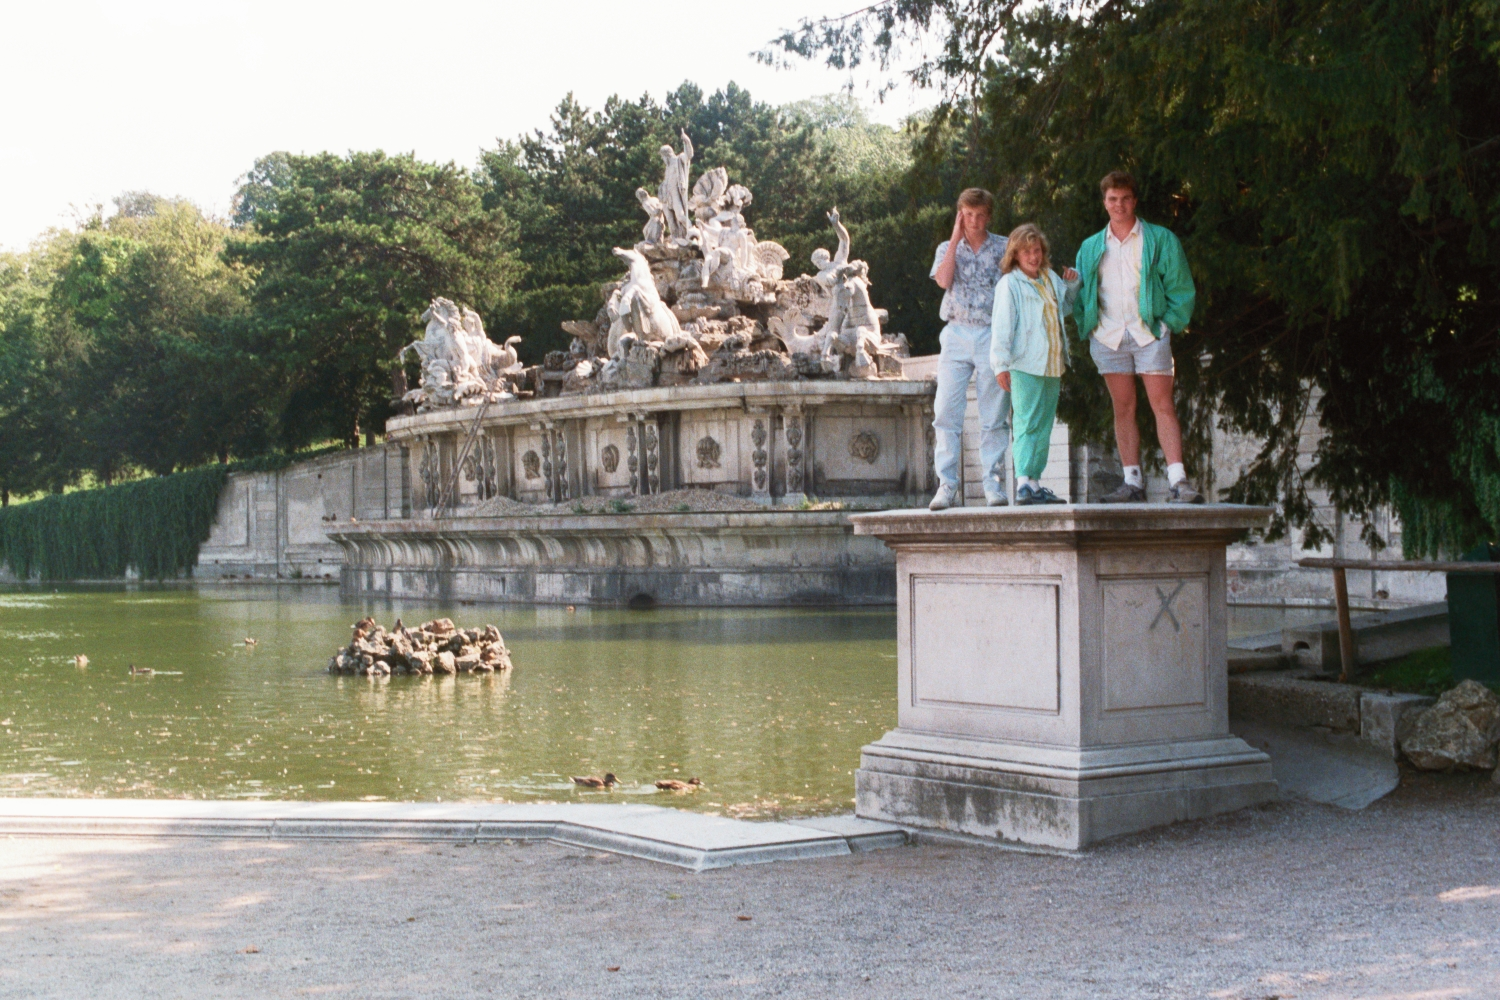 Matt Shearer, Amy Shearer and Russel Shearer at Schonbrunn Palace